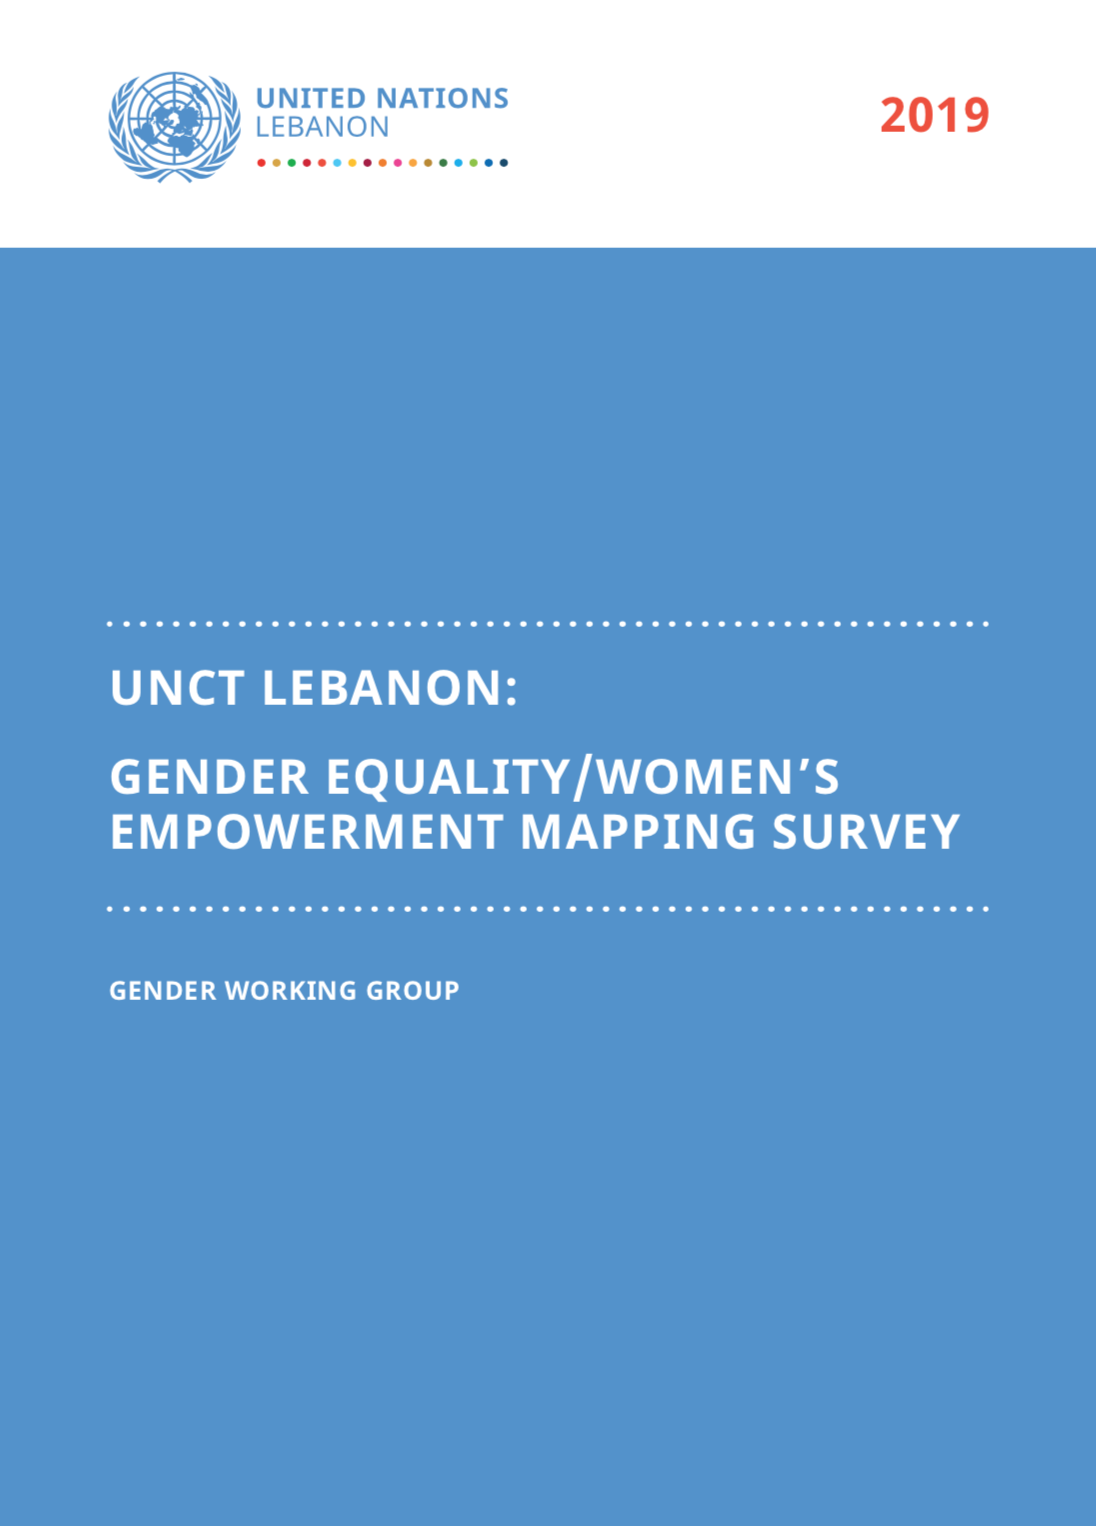 Gender Equality / Women's Empowerment Mapping Survey